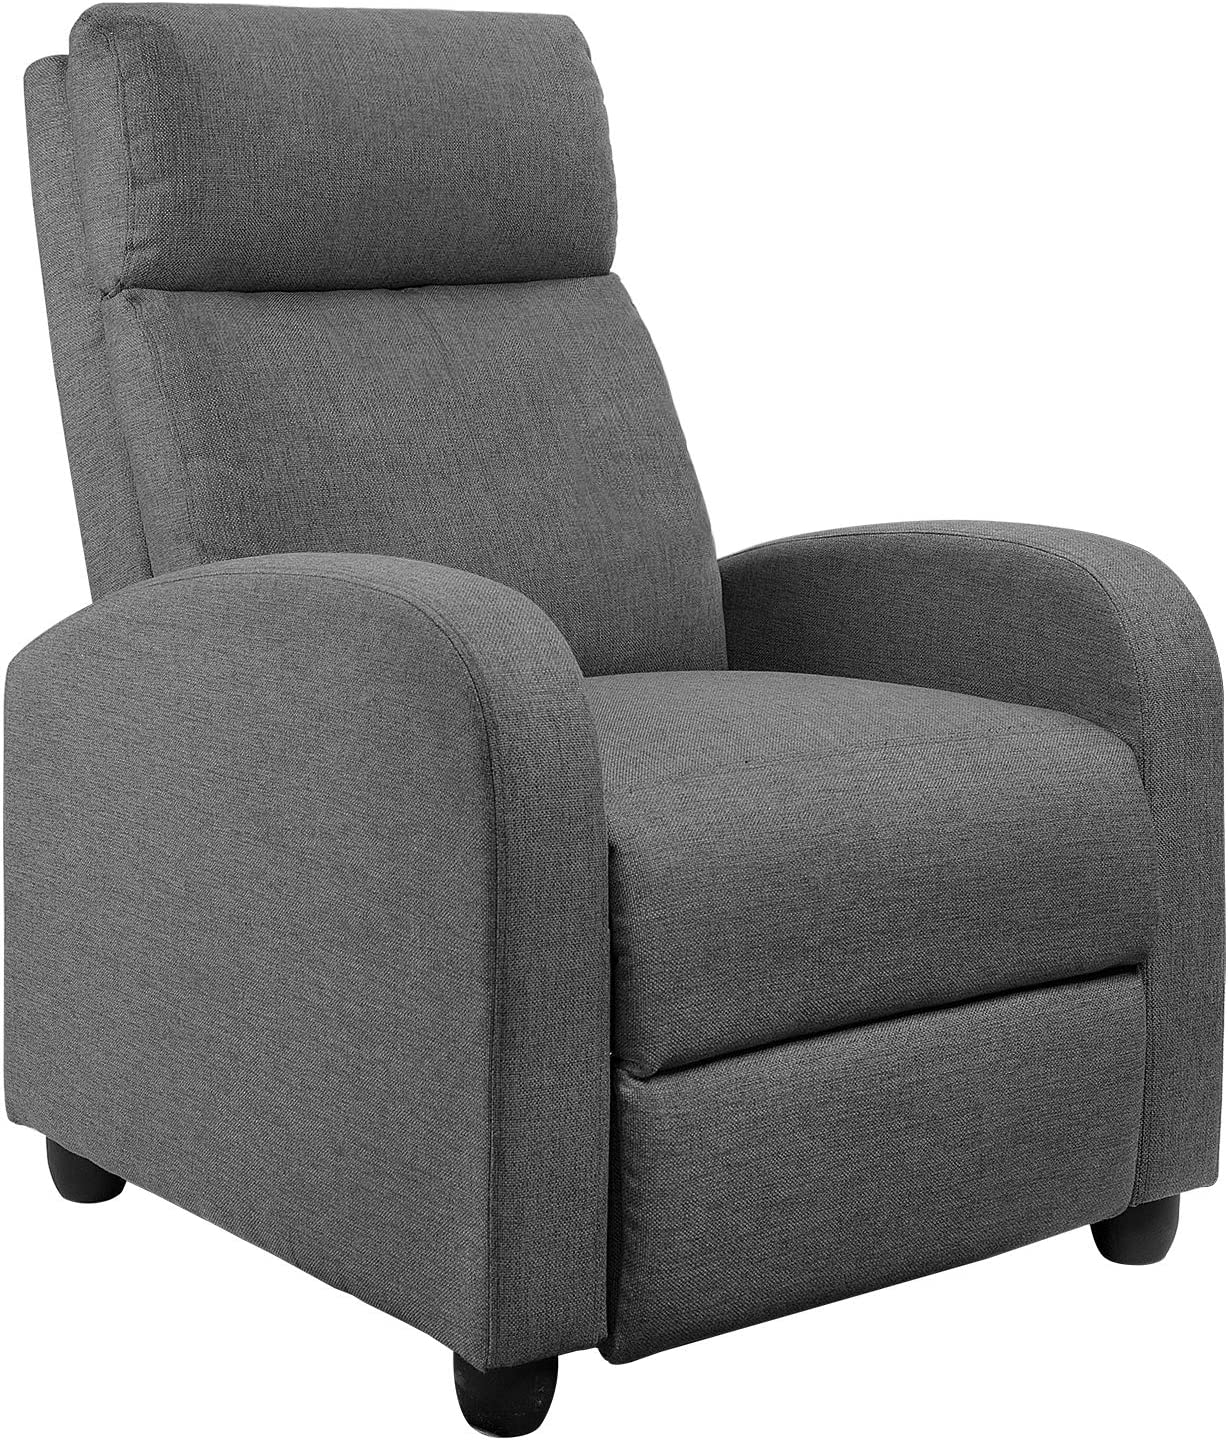 JUMMICO Fabric Recliner Chair